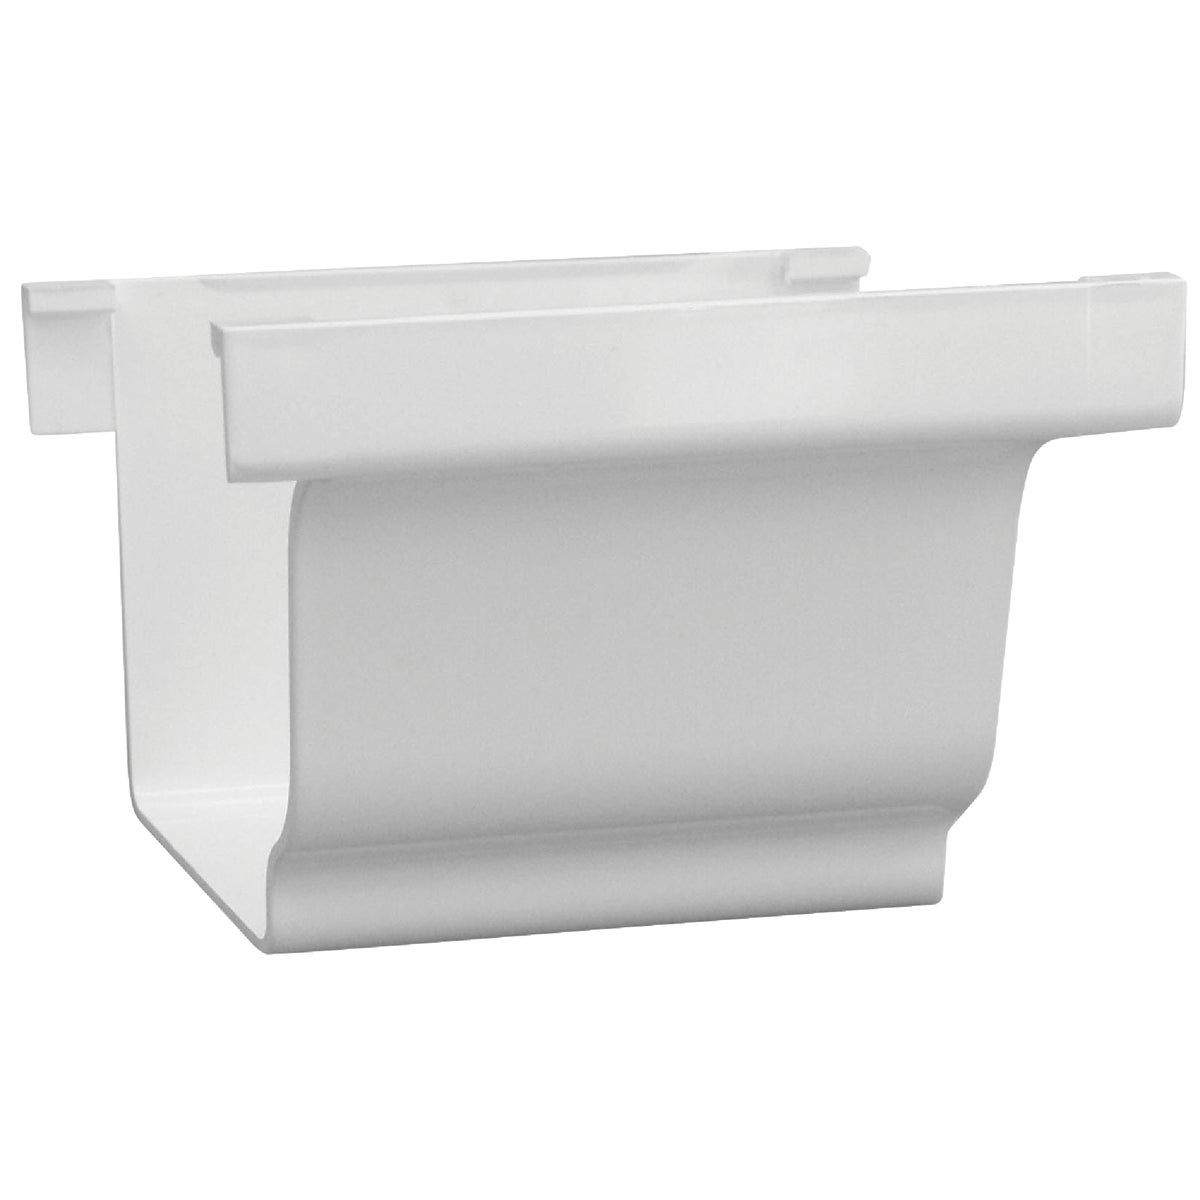 WHT GUTTER CONNECTOR - AW105K by Genova Products